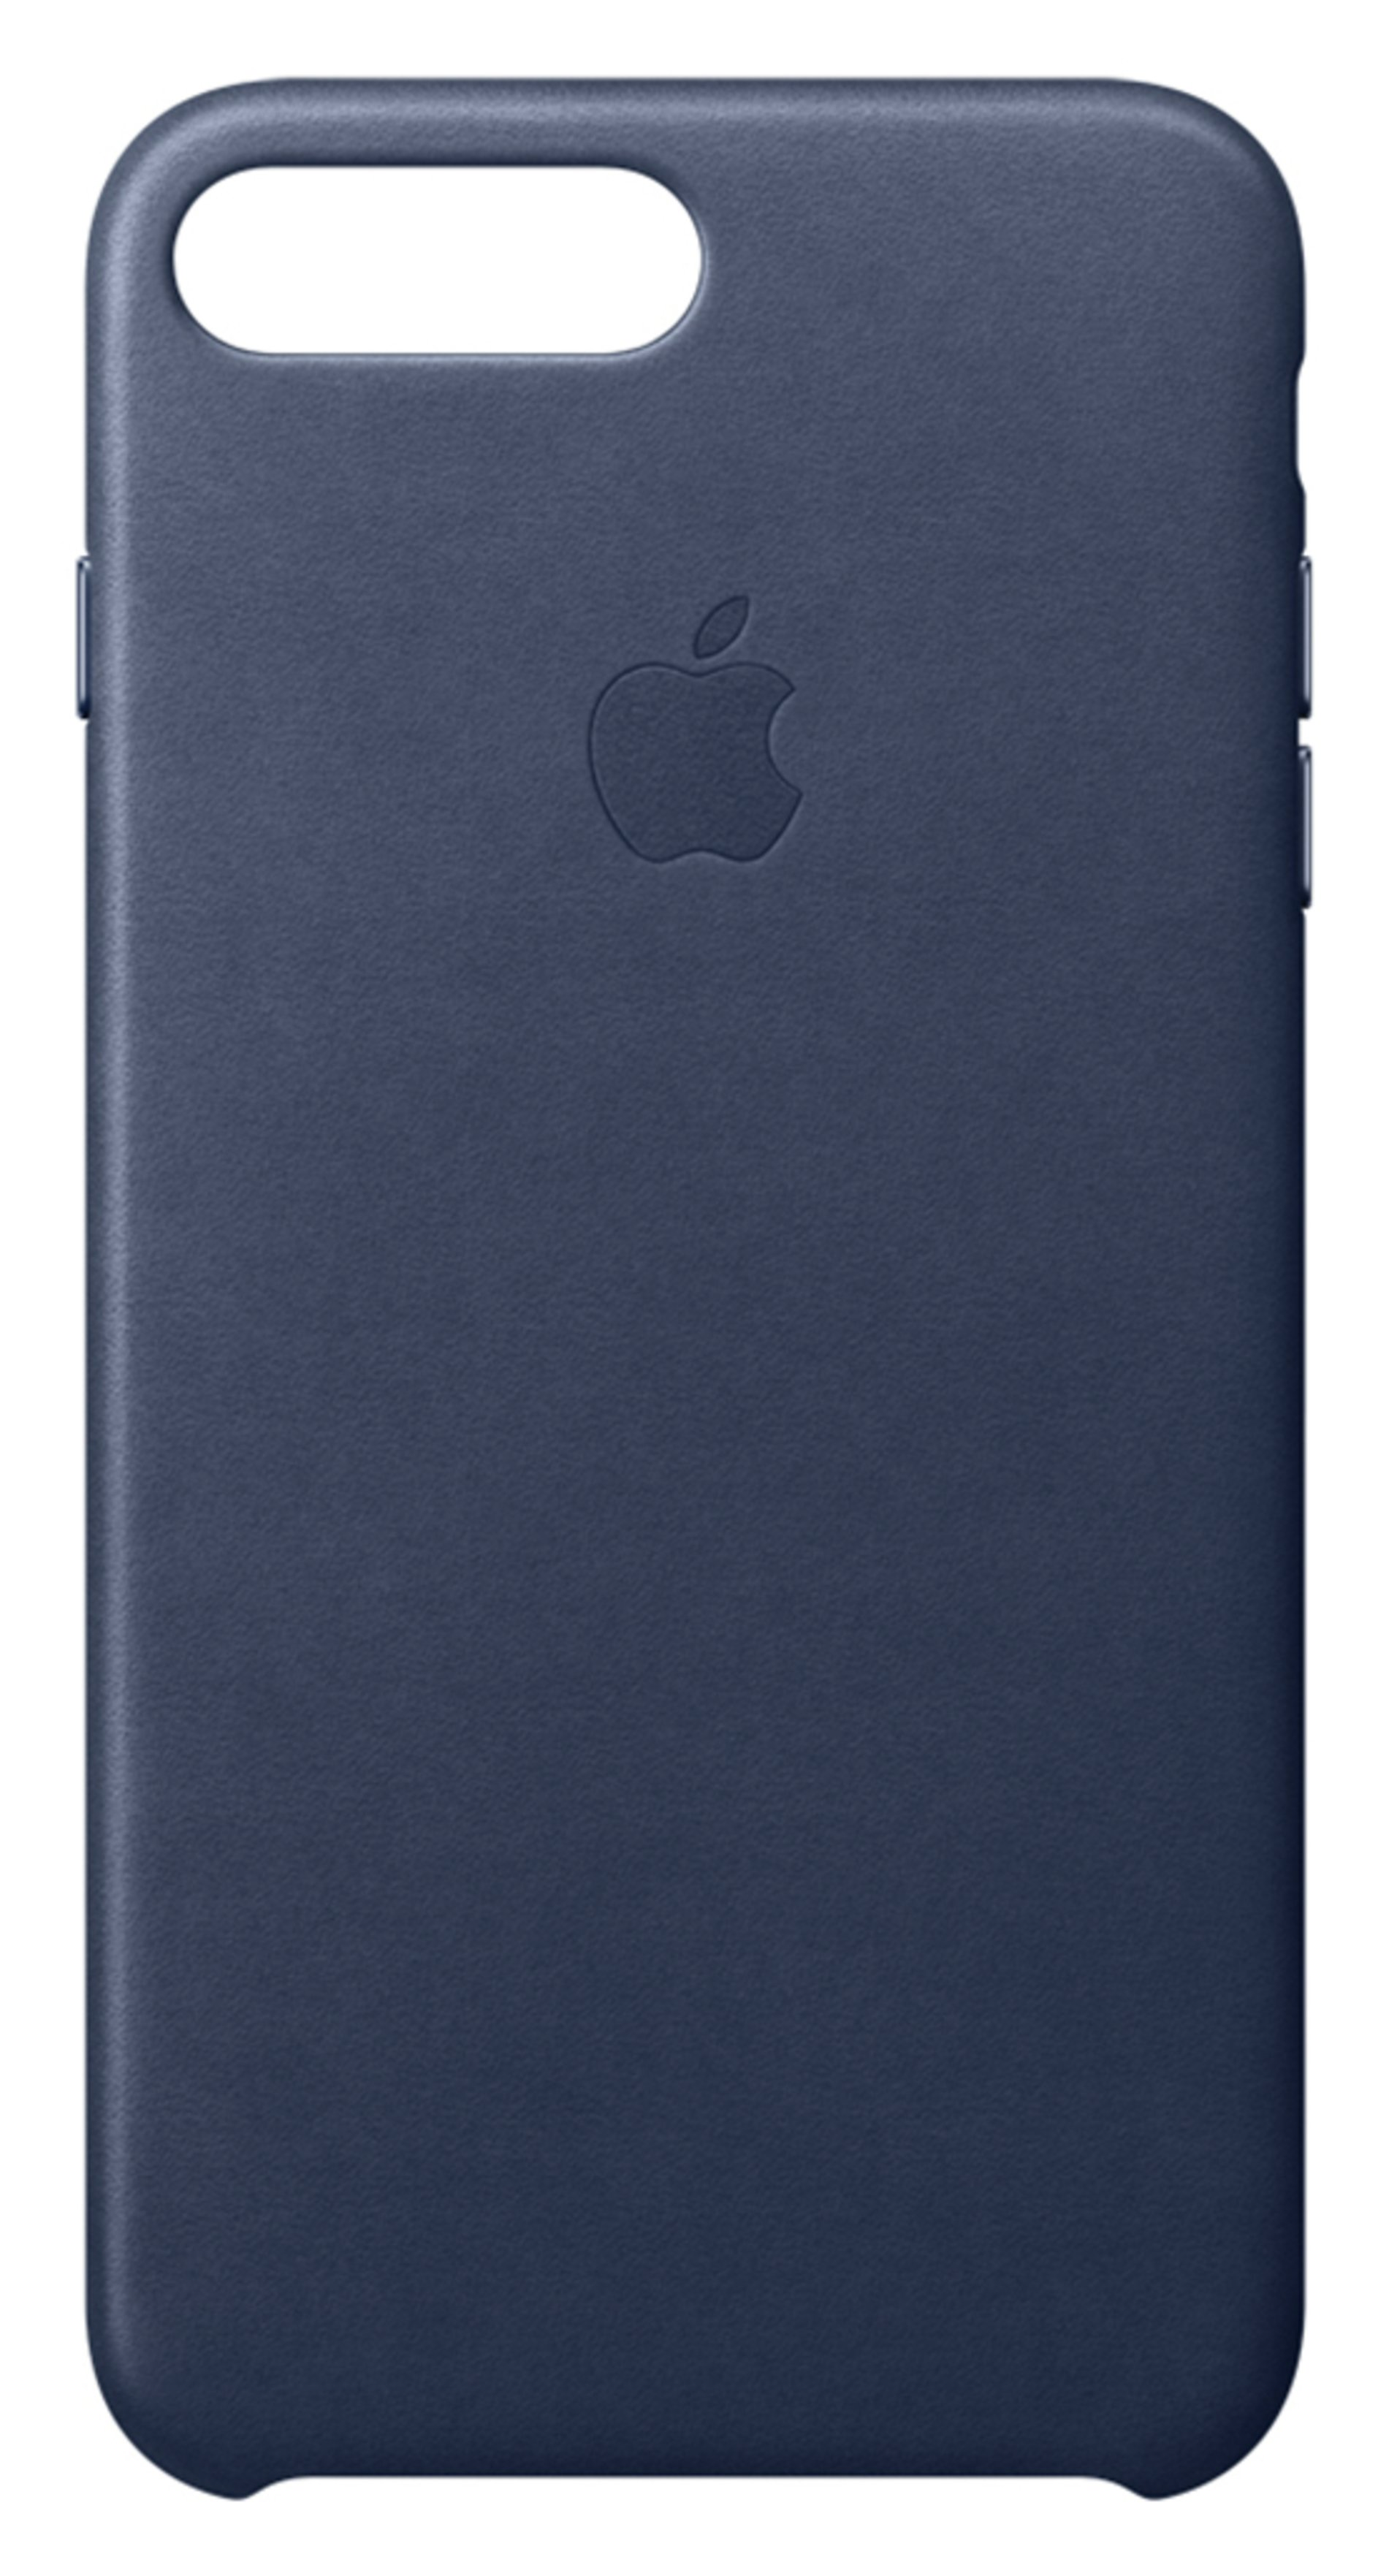 Apple iPhone 8+/ 7+ Leather Case - Midnight Blue